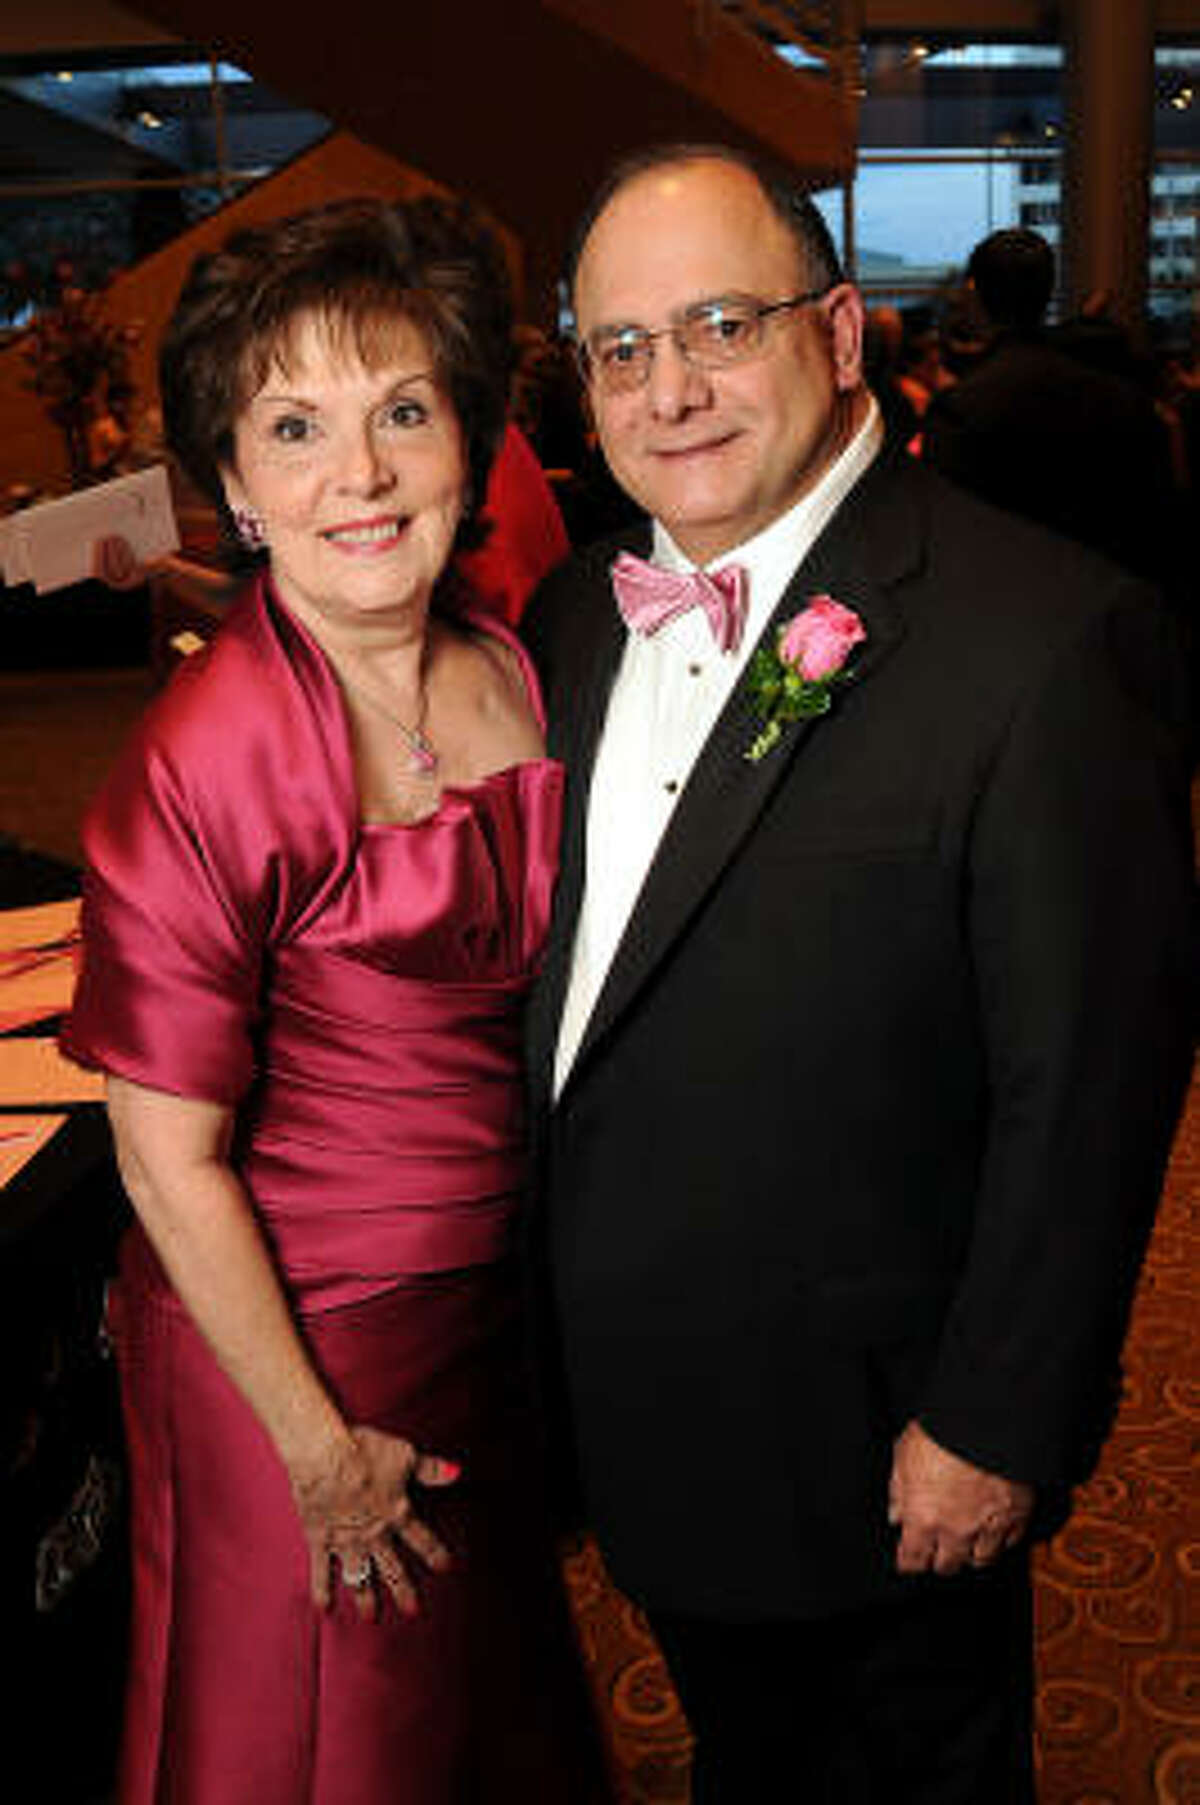 Ann and Clarence Cazalot at the 2010 Pink Tie Gala at the InterContinental Hotel.